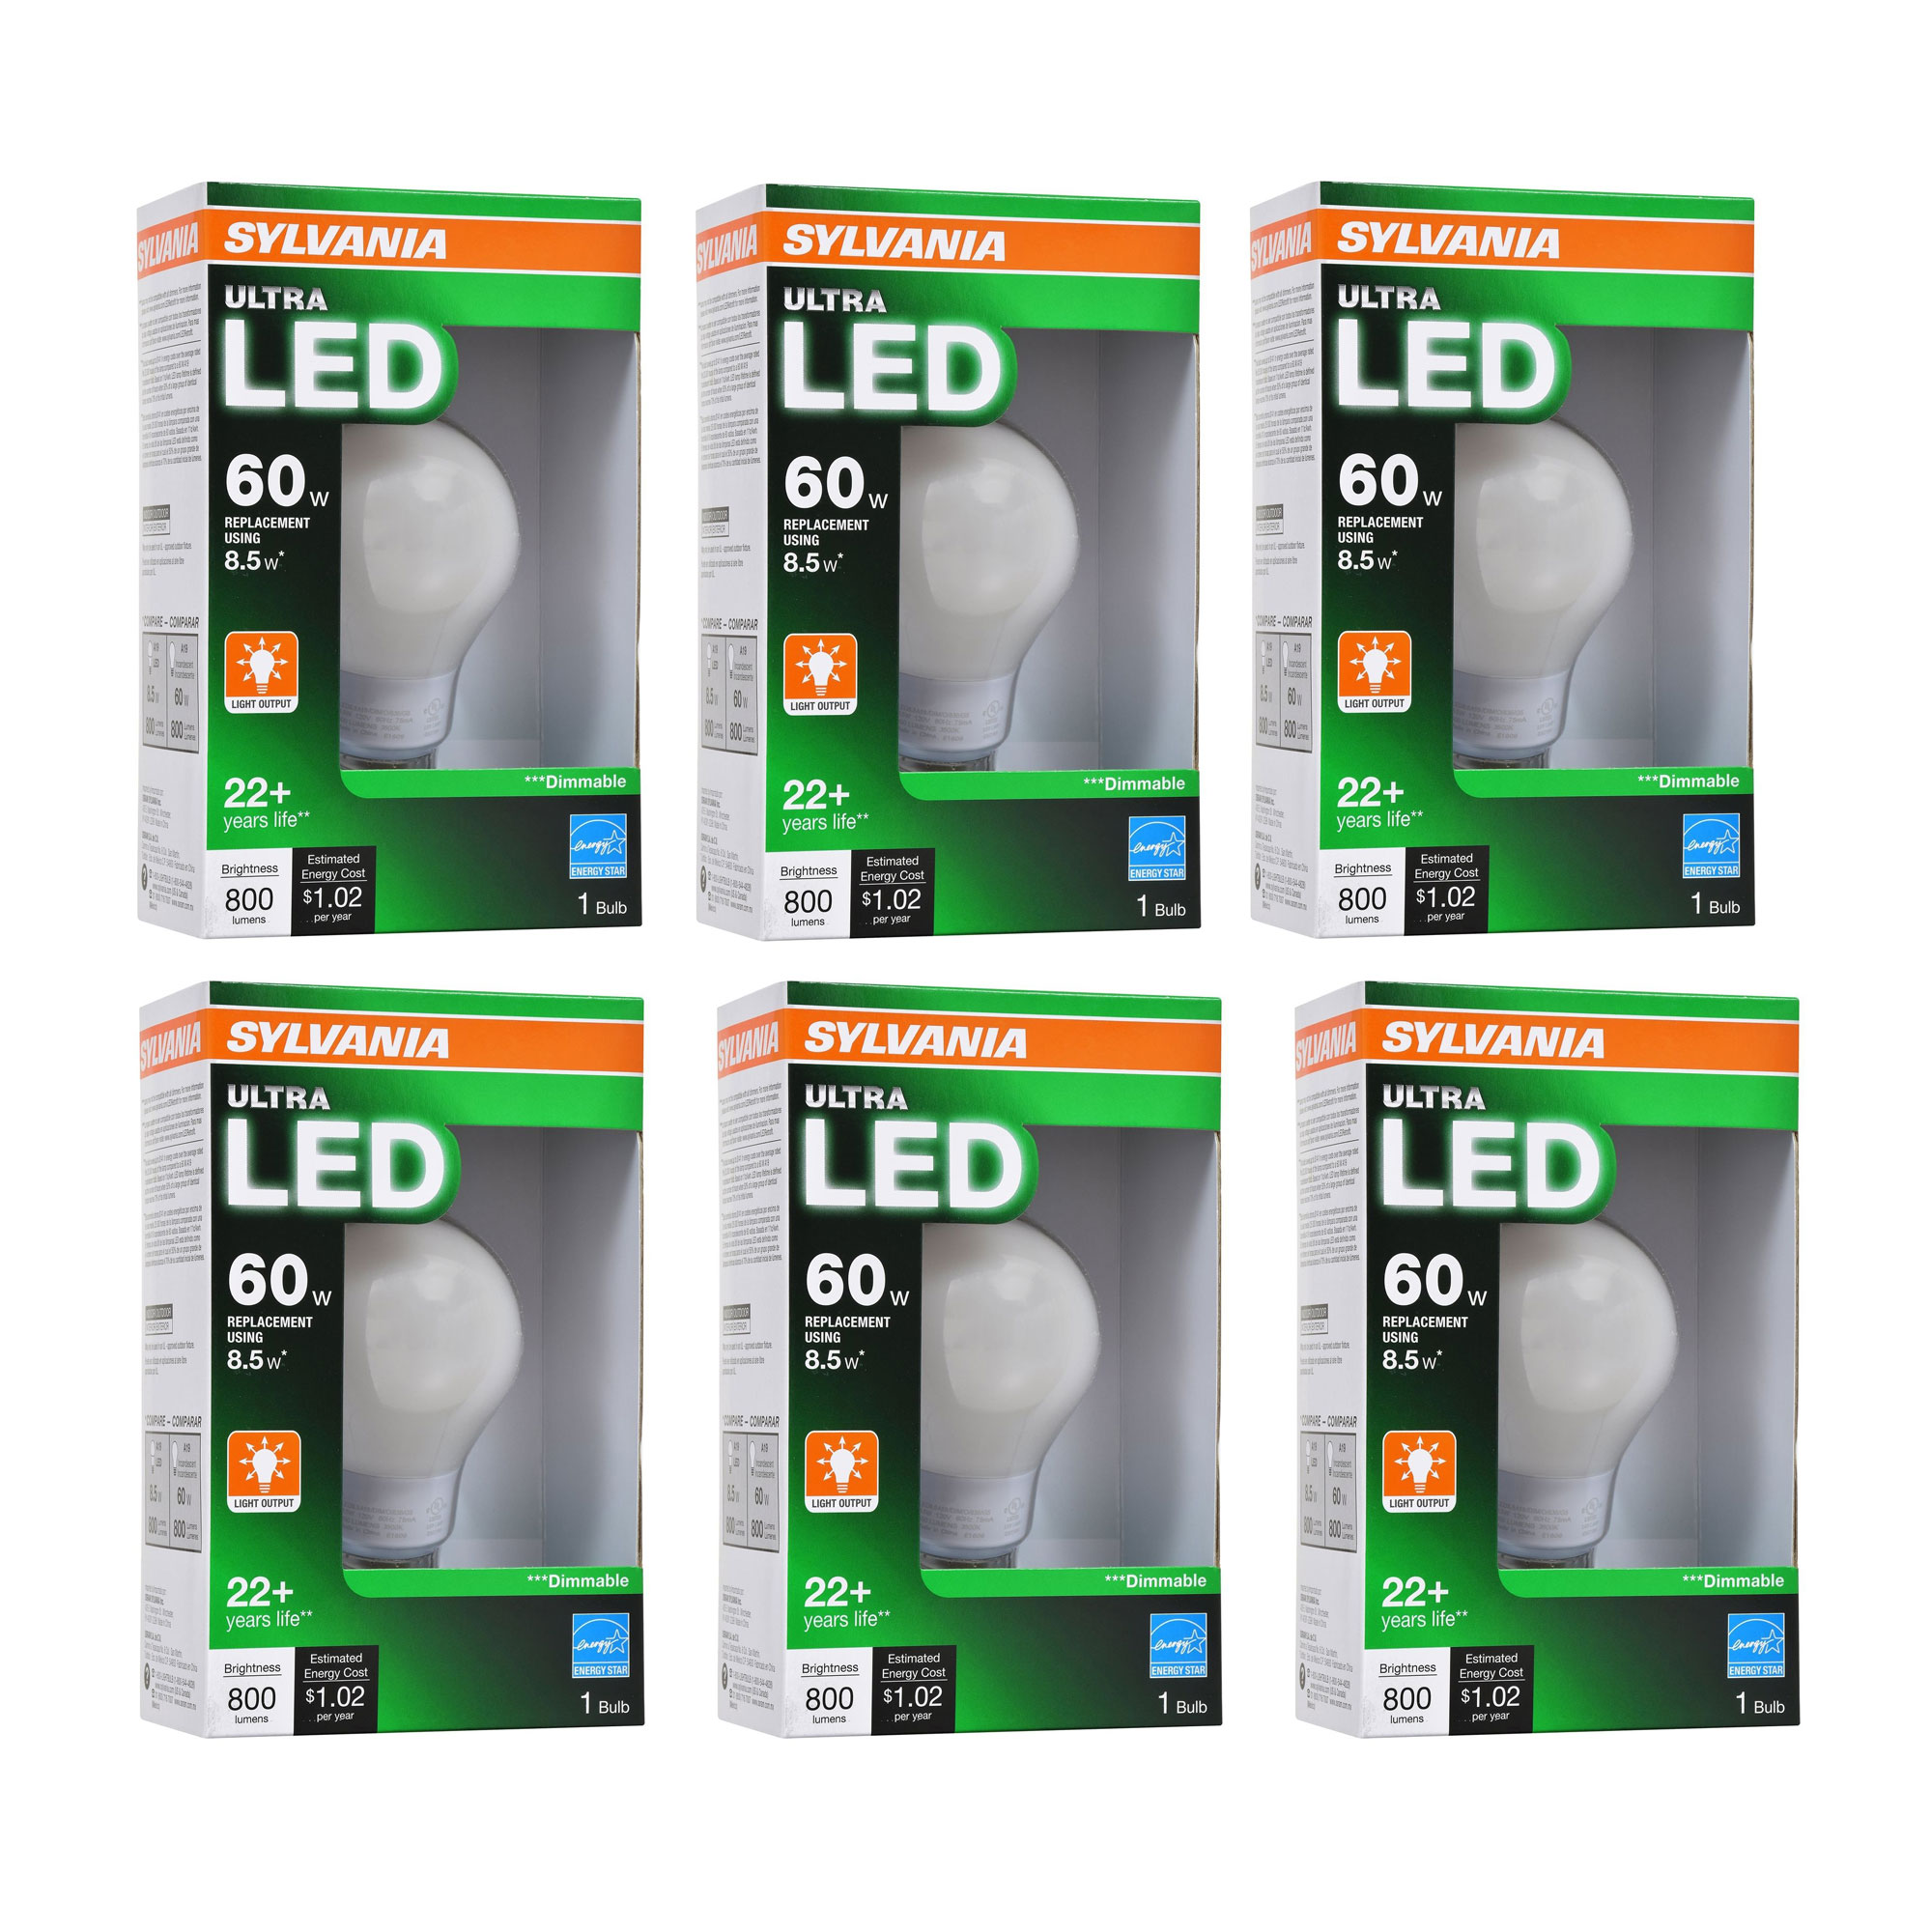 Sylvania Ultra 60W 2700K Dimmable Soft White Energy Star LED Light Bulb, 6 Pack